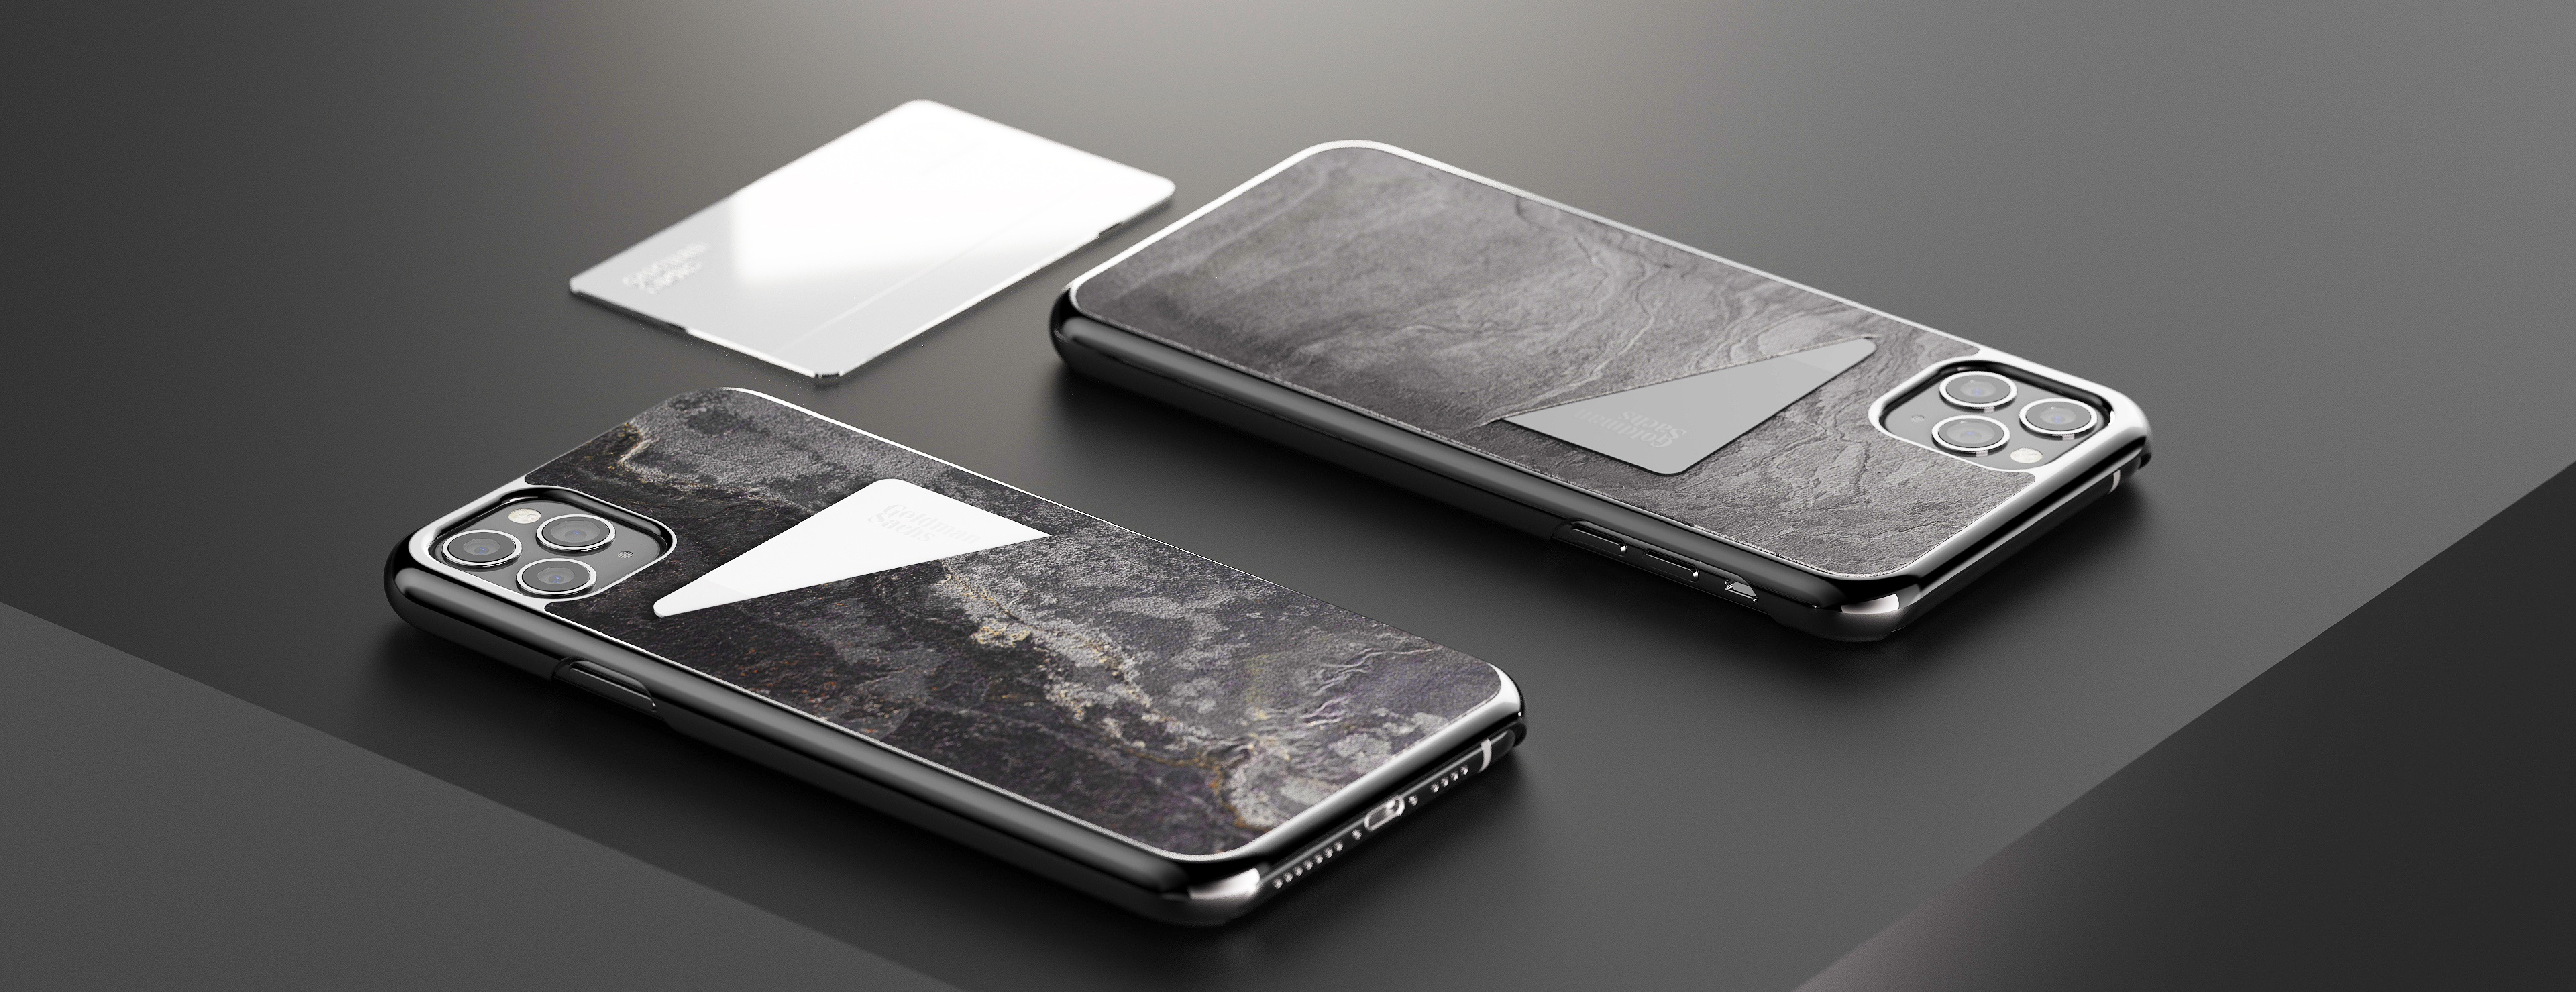 The iPhone Wallet Slate Case